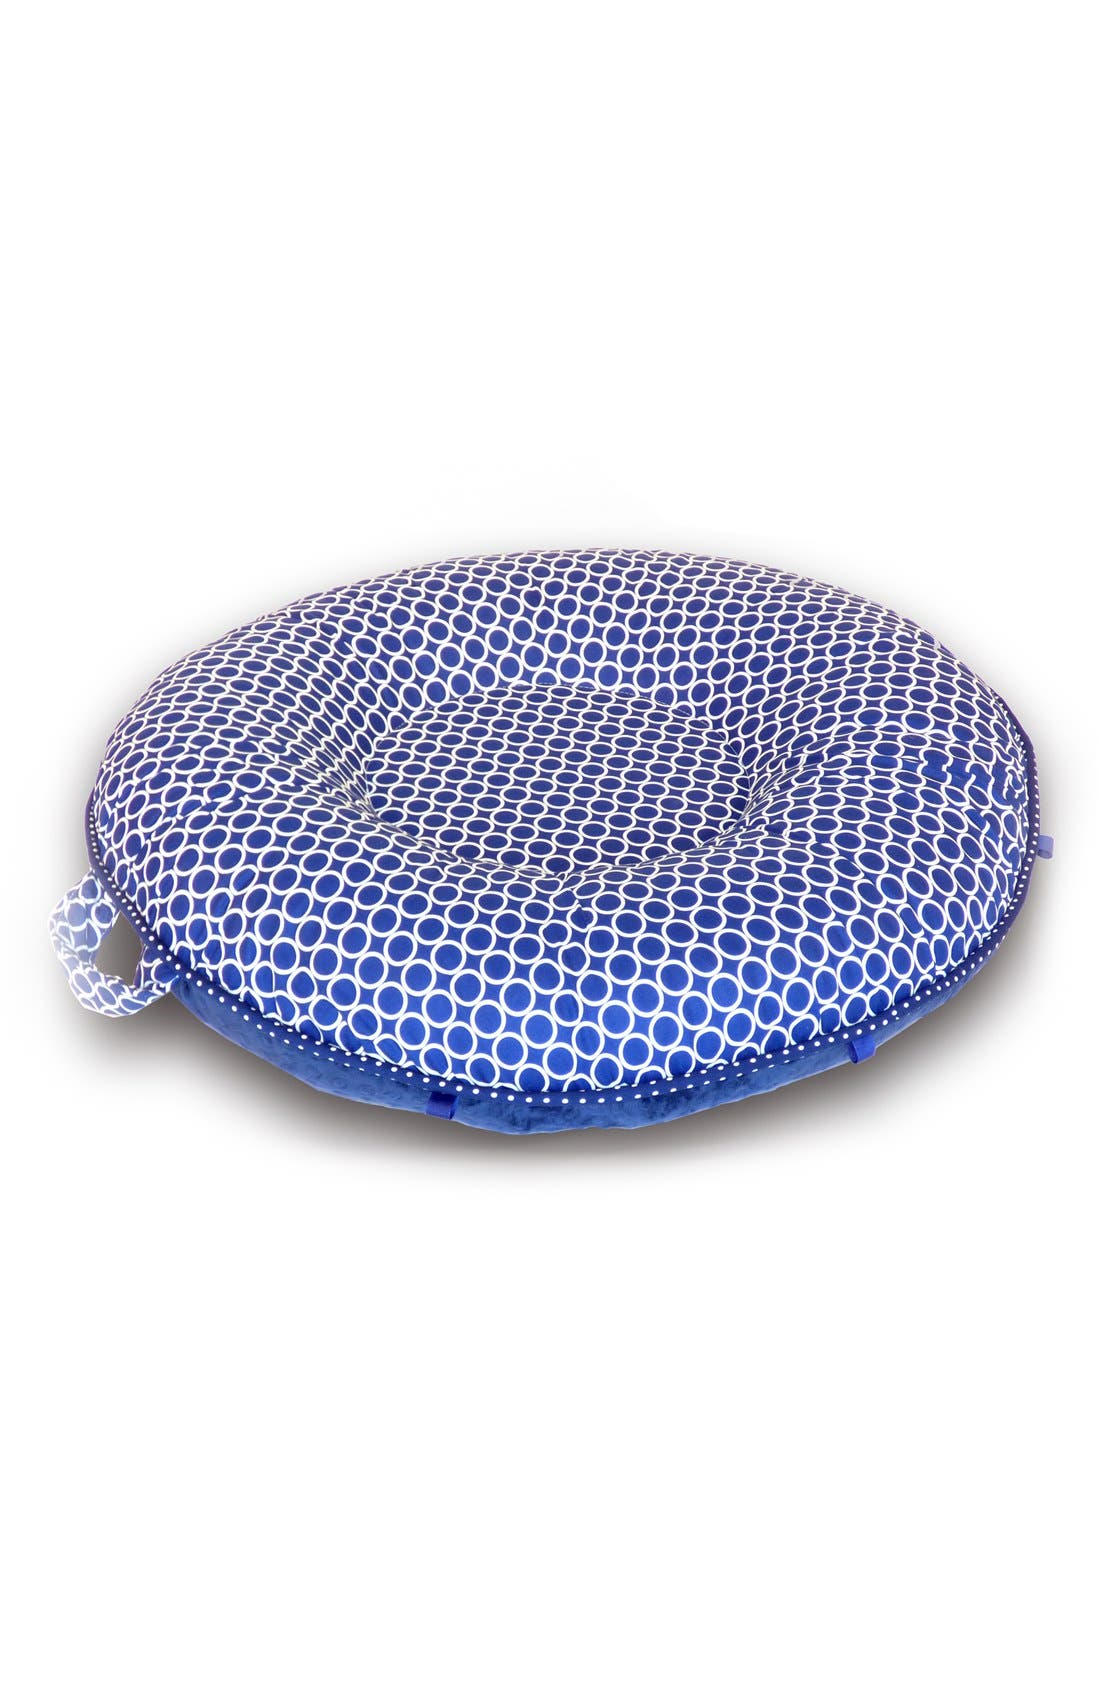 'Nathan' Portable Floor Pillow,                             Alternate thumbnail 2, color,                             410